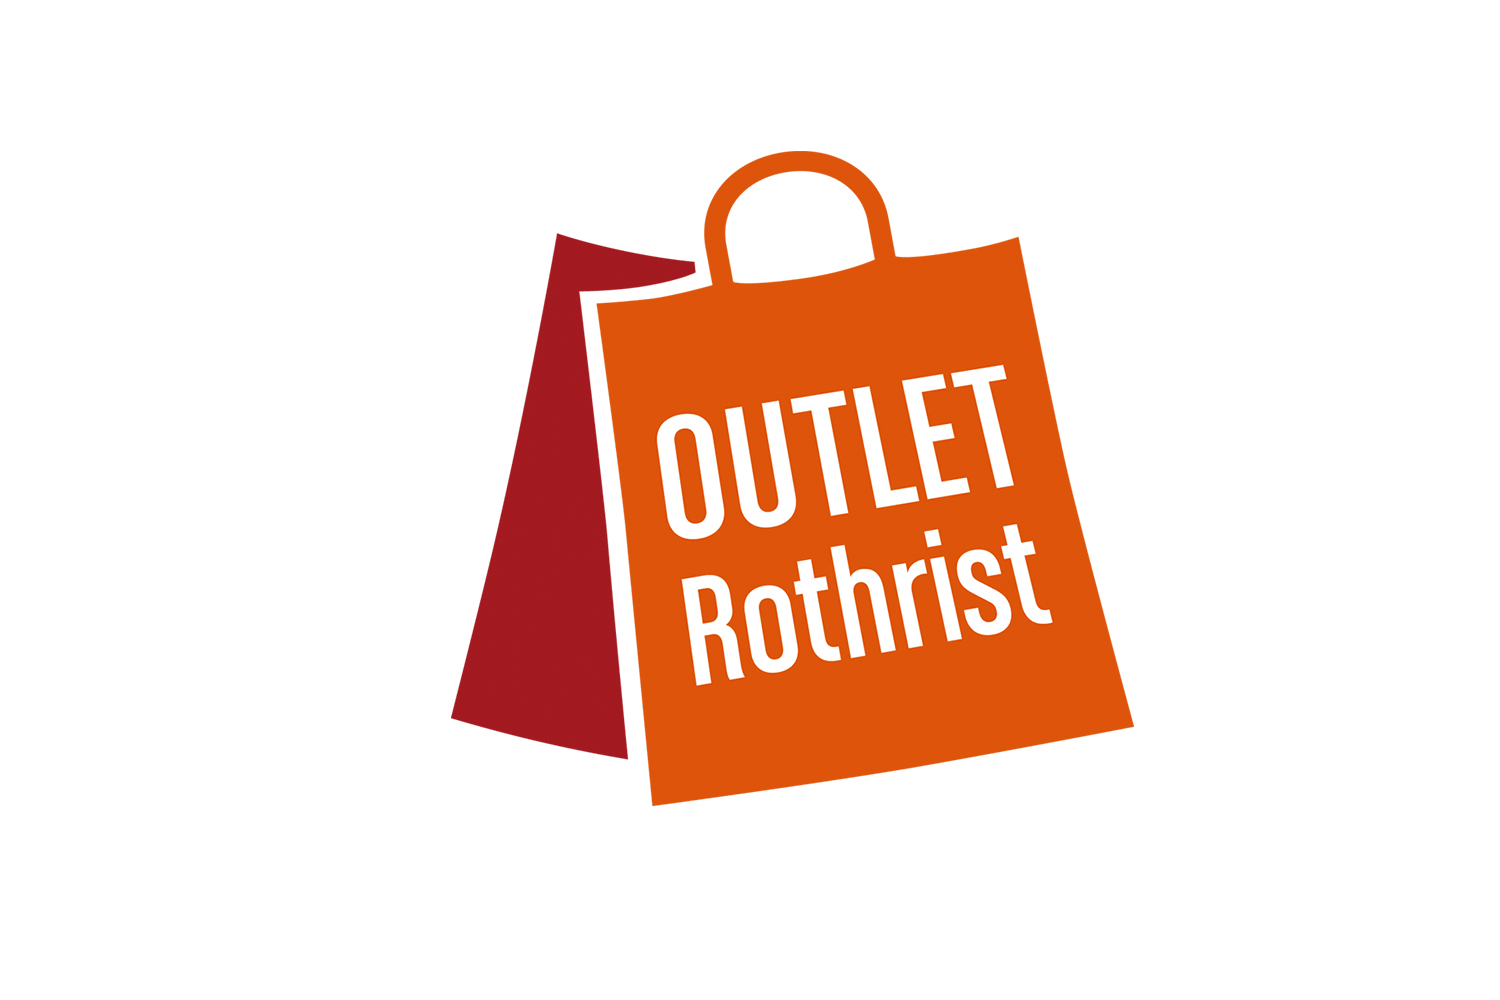 portfolio-graphic-design-logo-outlet-rothrist-1.jpg